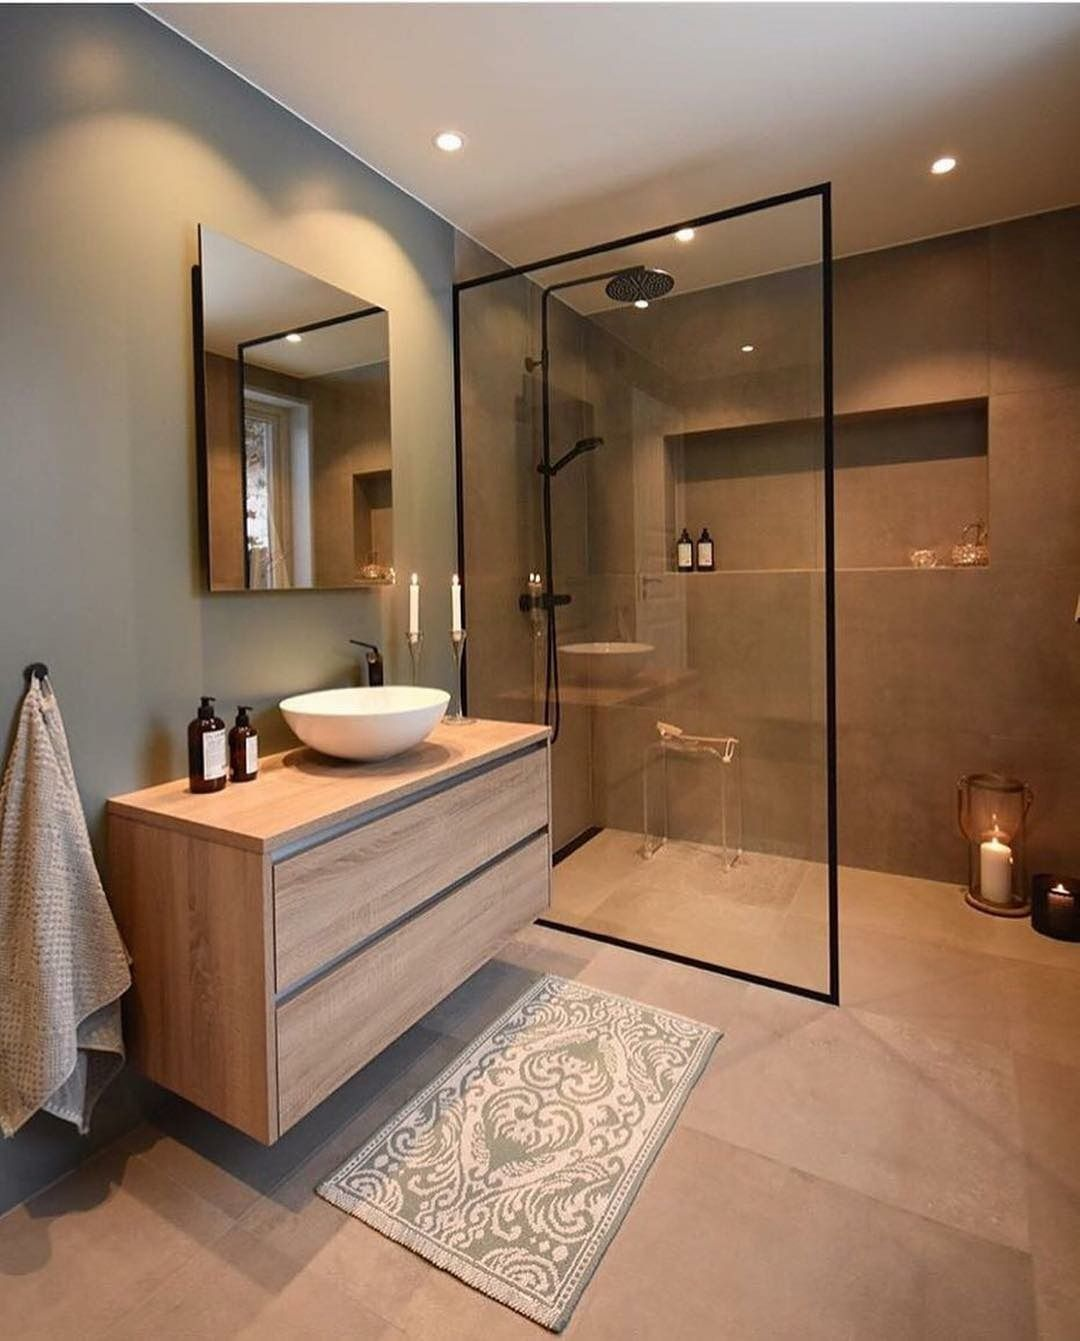 Top 5 Bathroom Inspiration This Weekthe Perfect Scandinavian Style Home Is Part Of Bathroom R Modern Bathroom Design Bathroom Interior Bathroom Interior Design